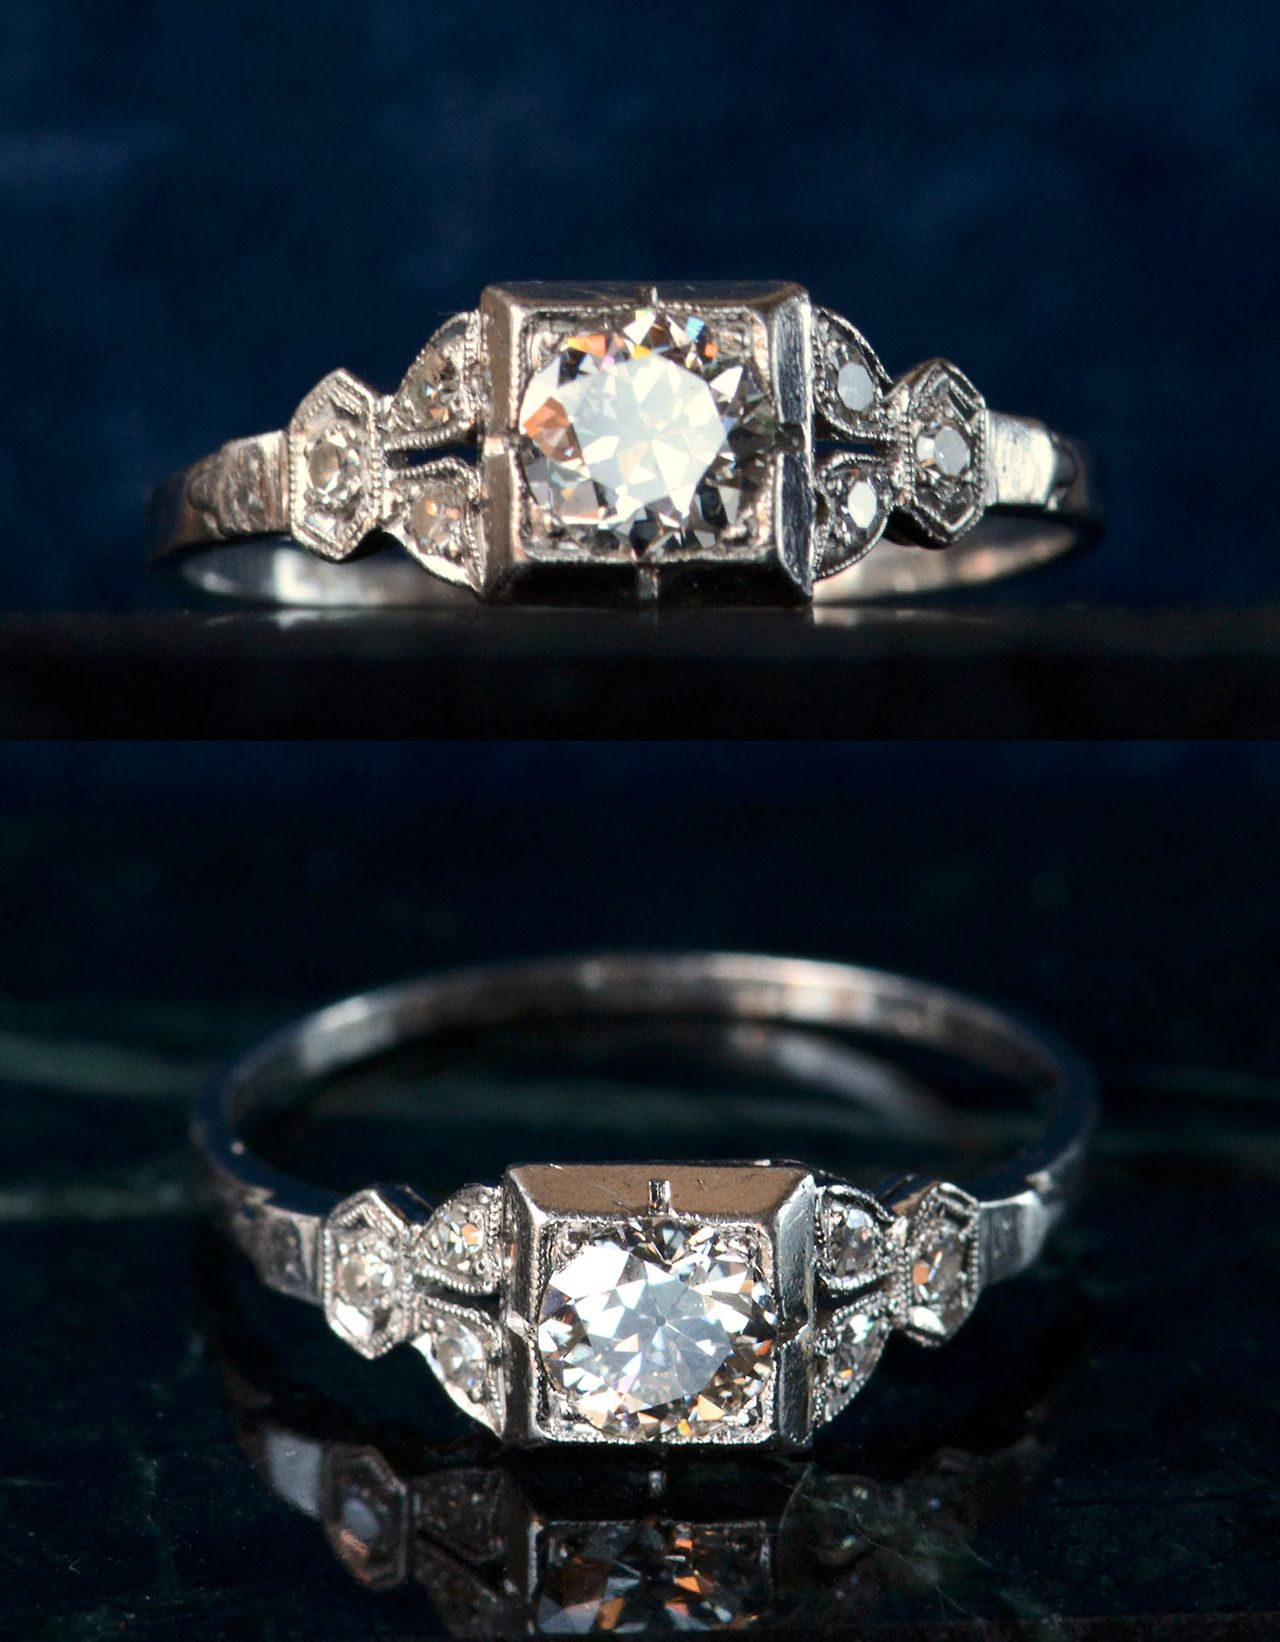 An all original 192030s Art Deco engagement ring in